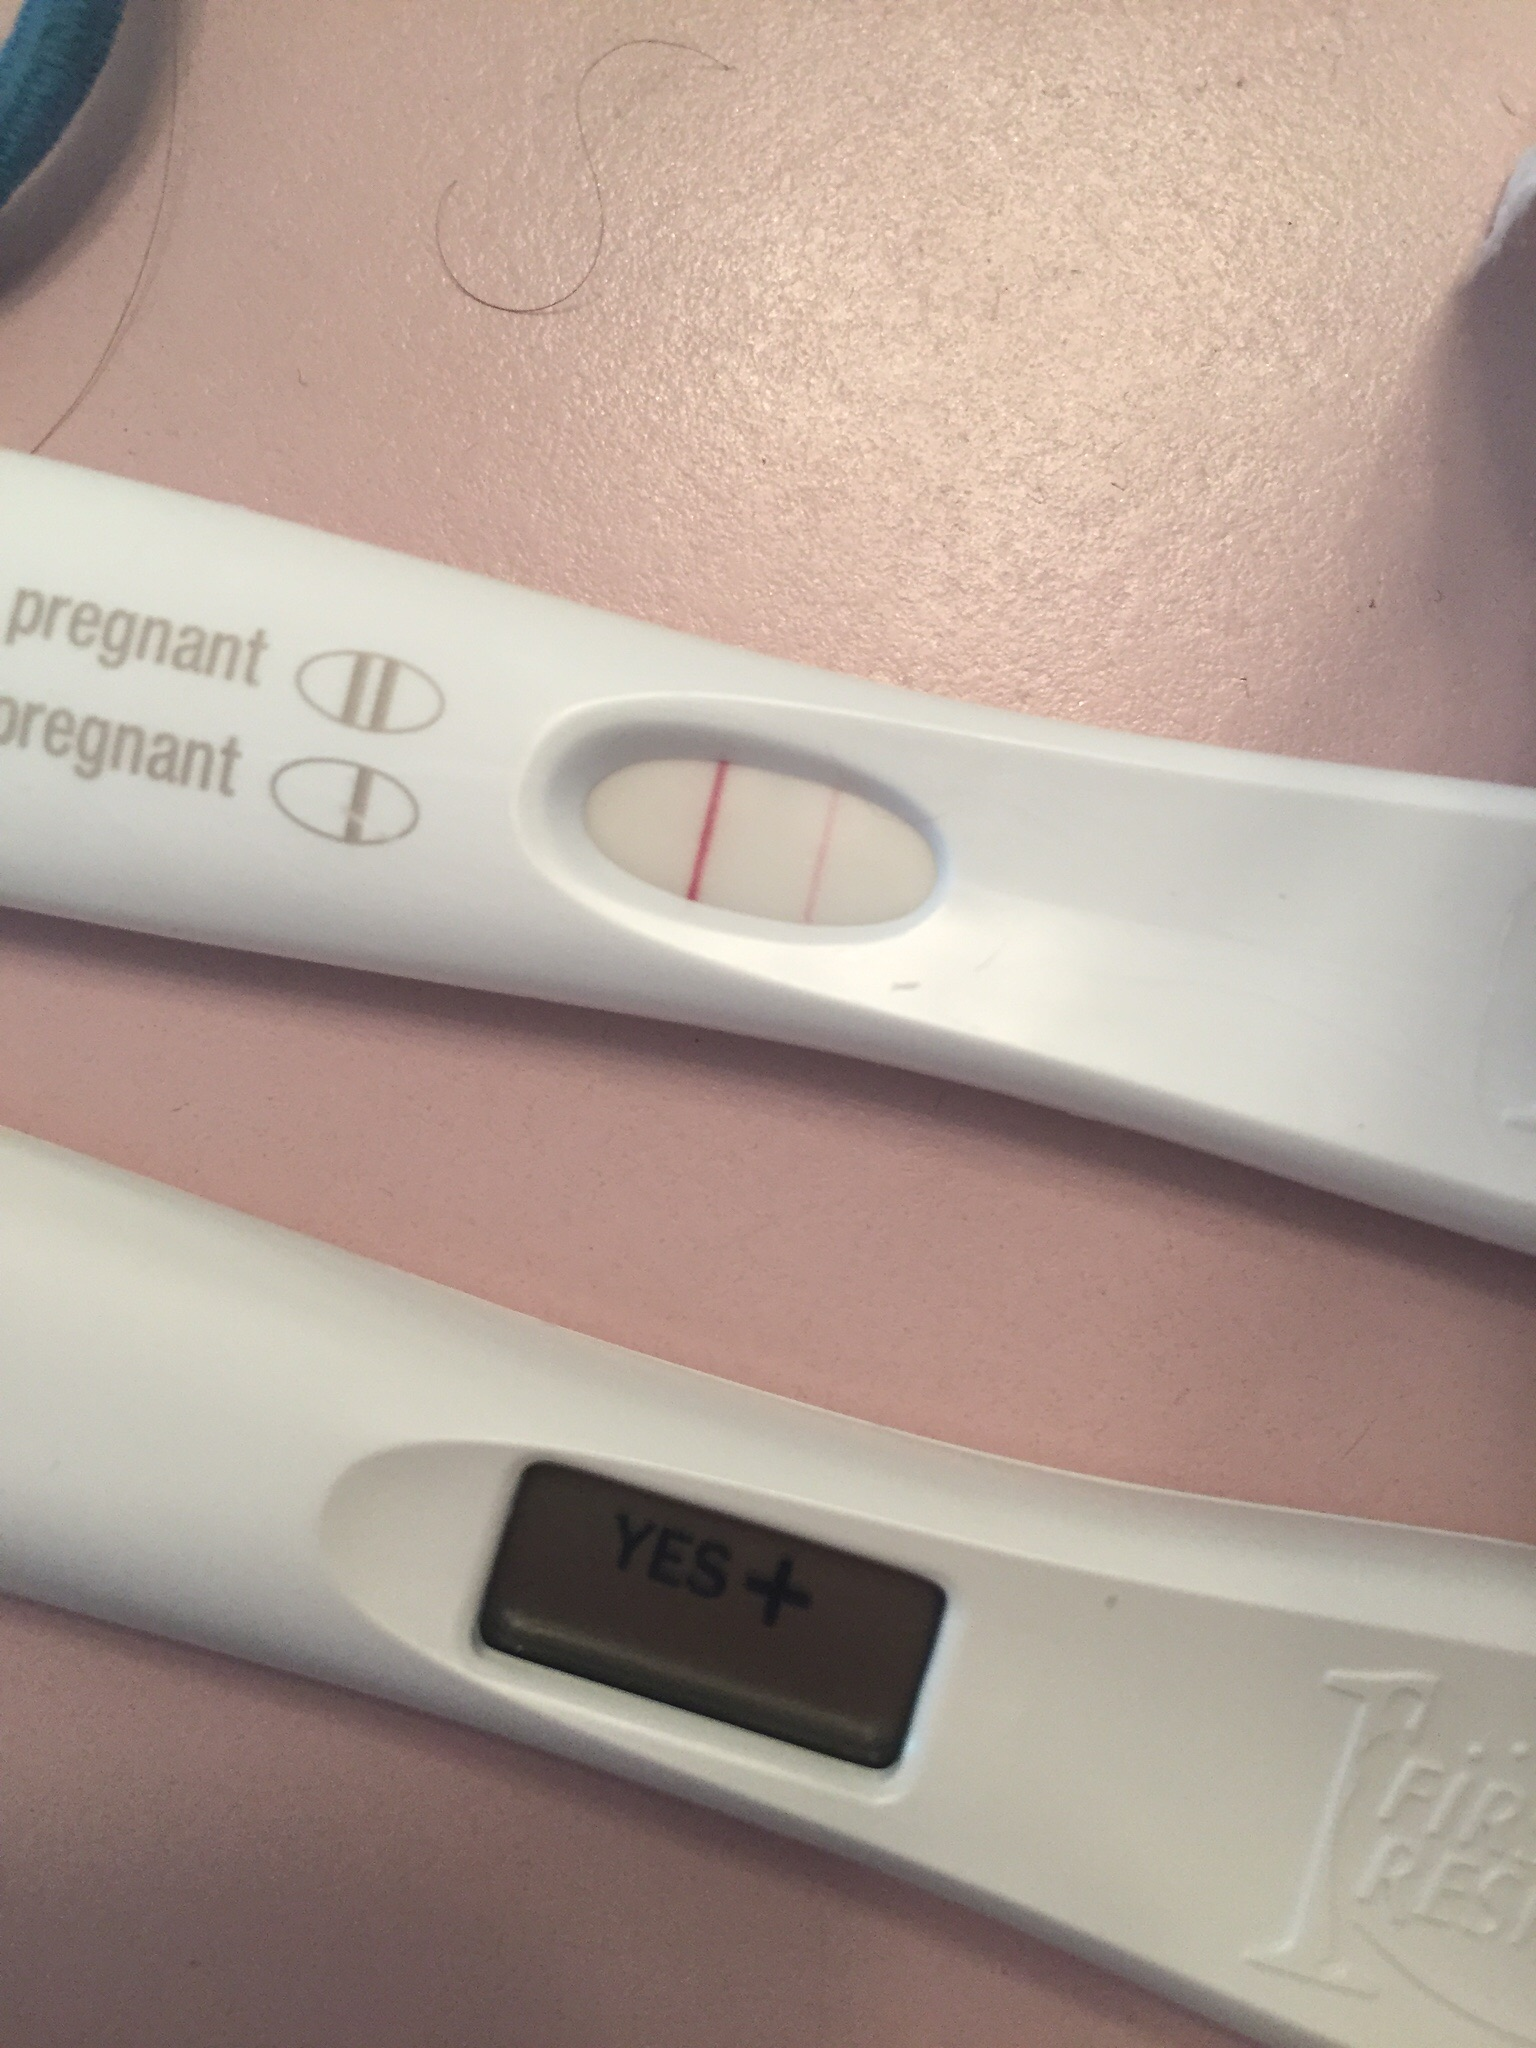 What does a positive pregnancy test really look like Page 12